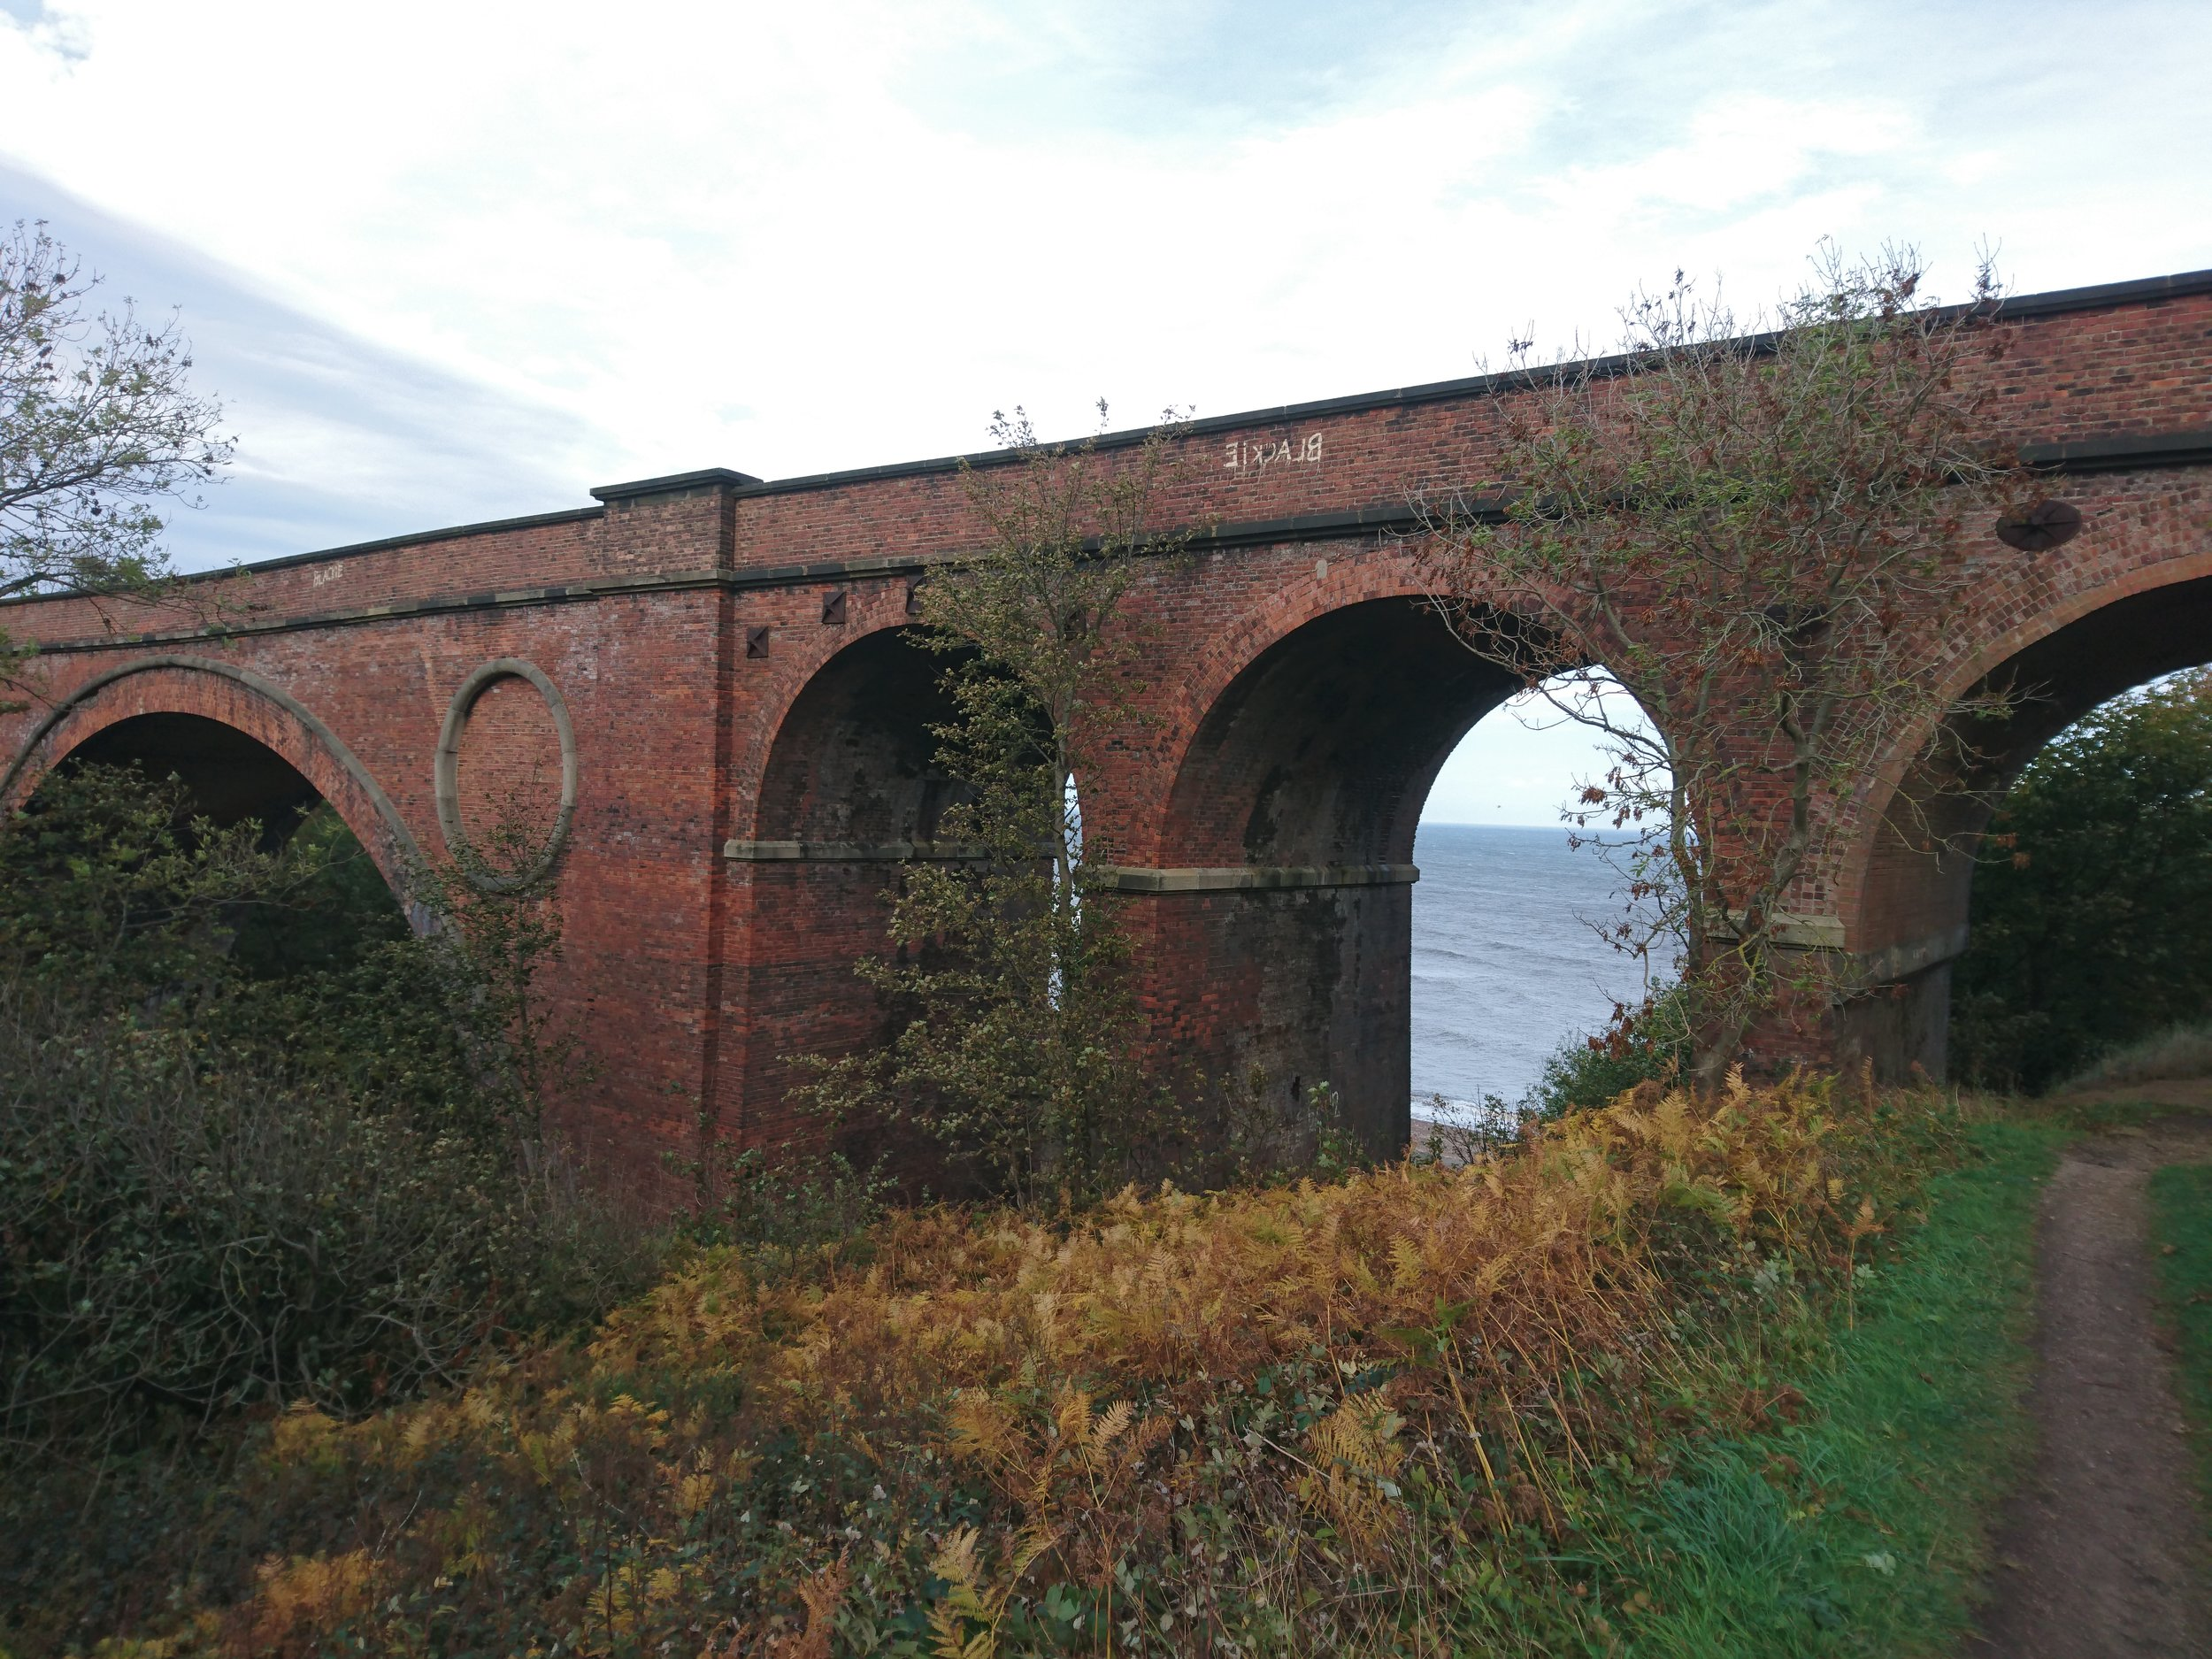 Viaduct after Seaham